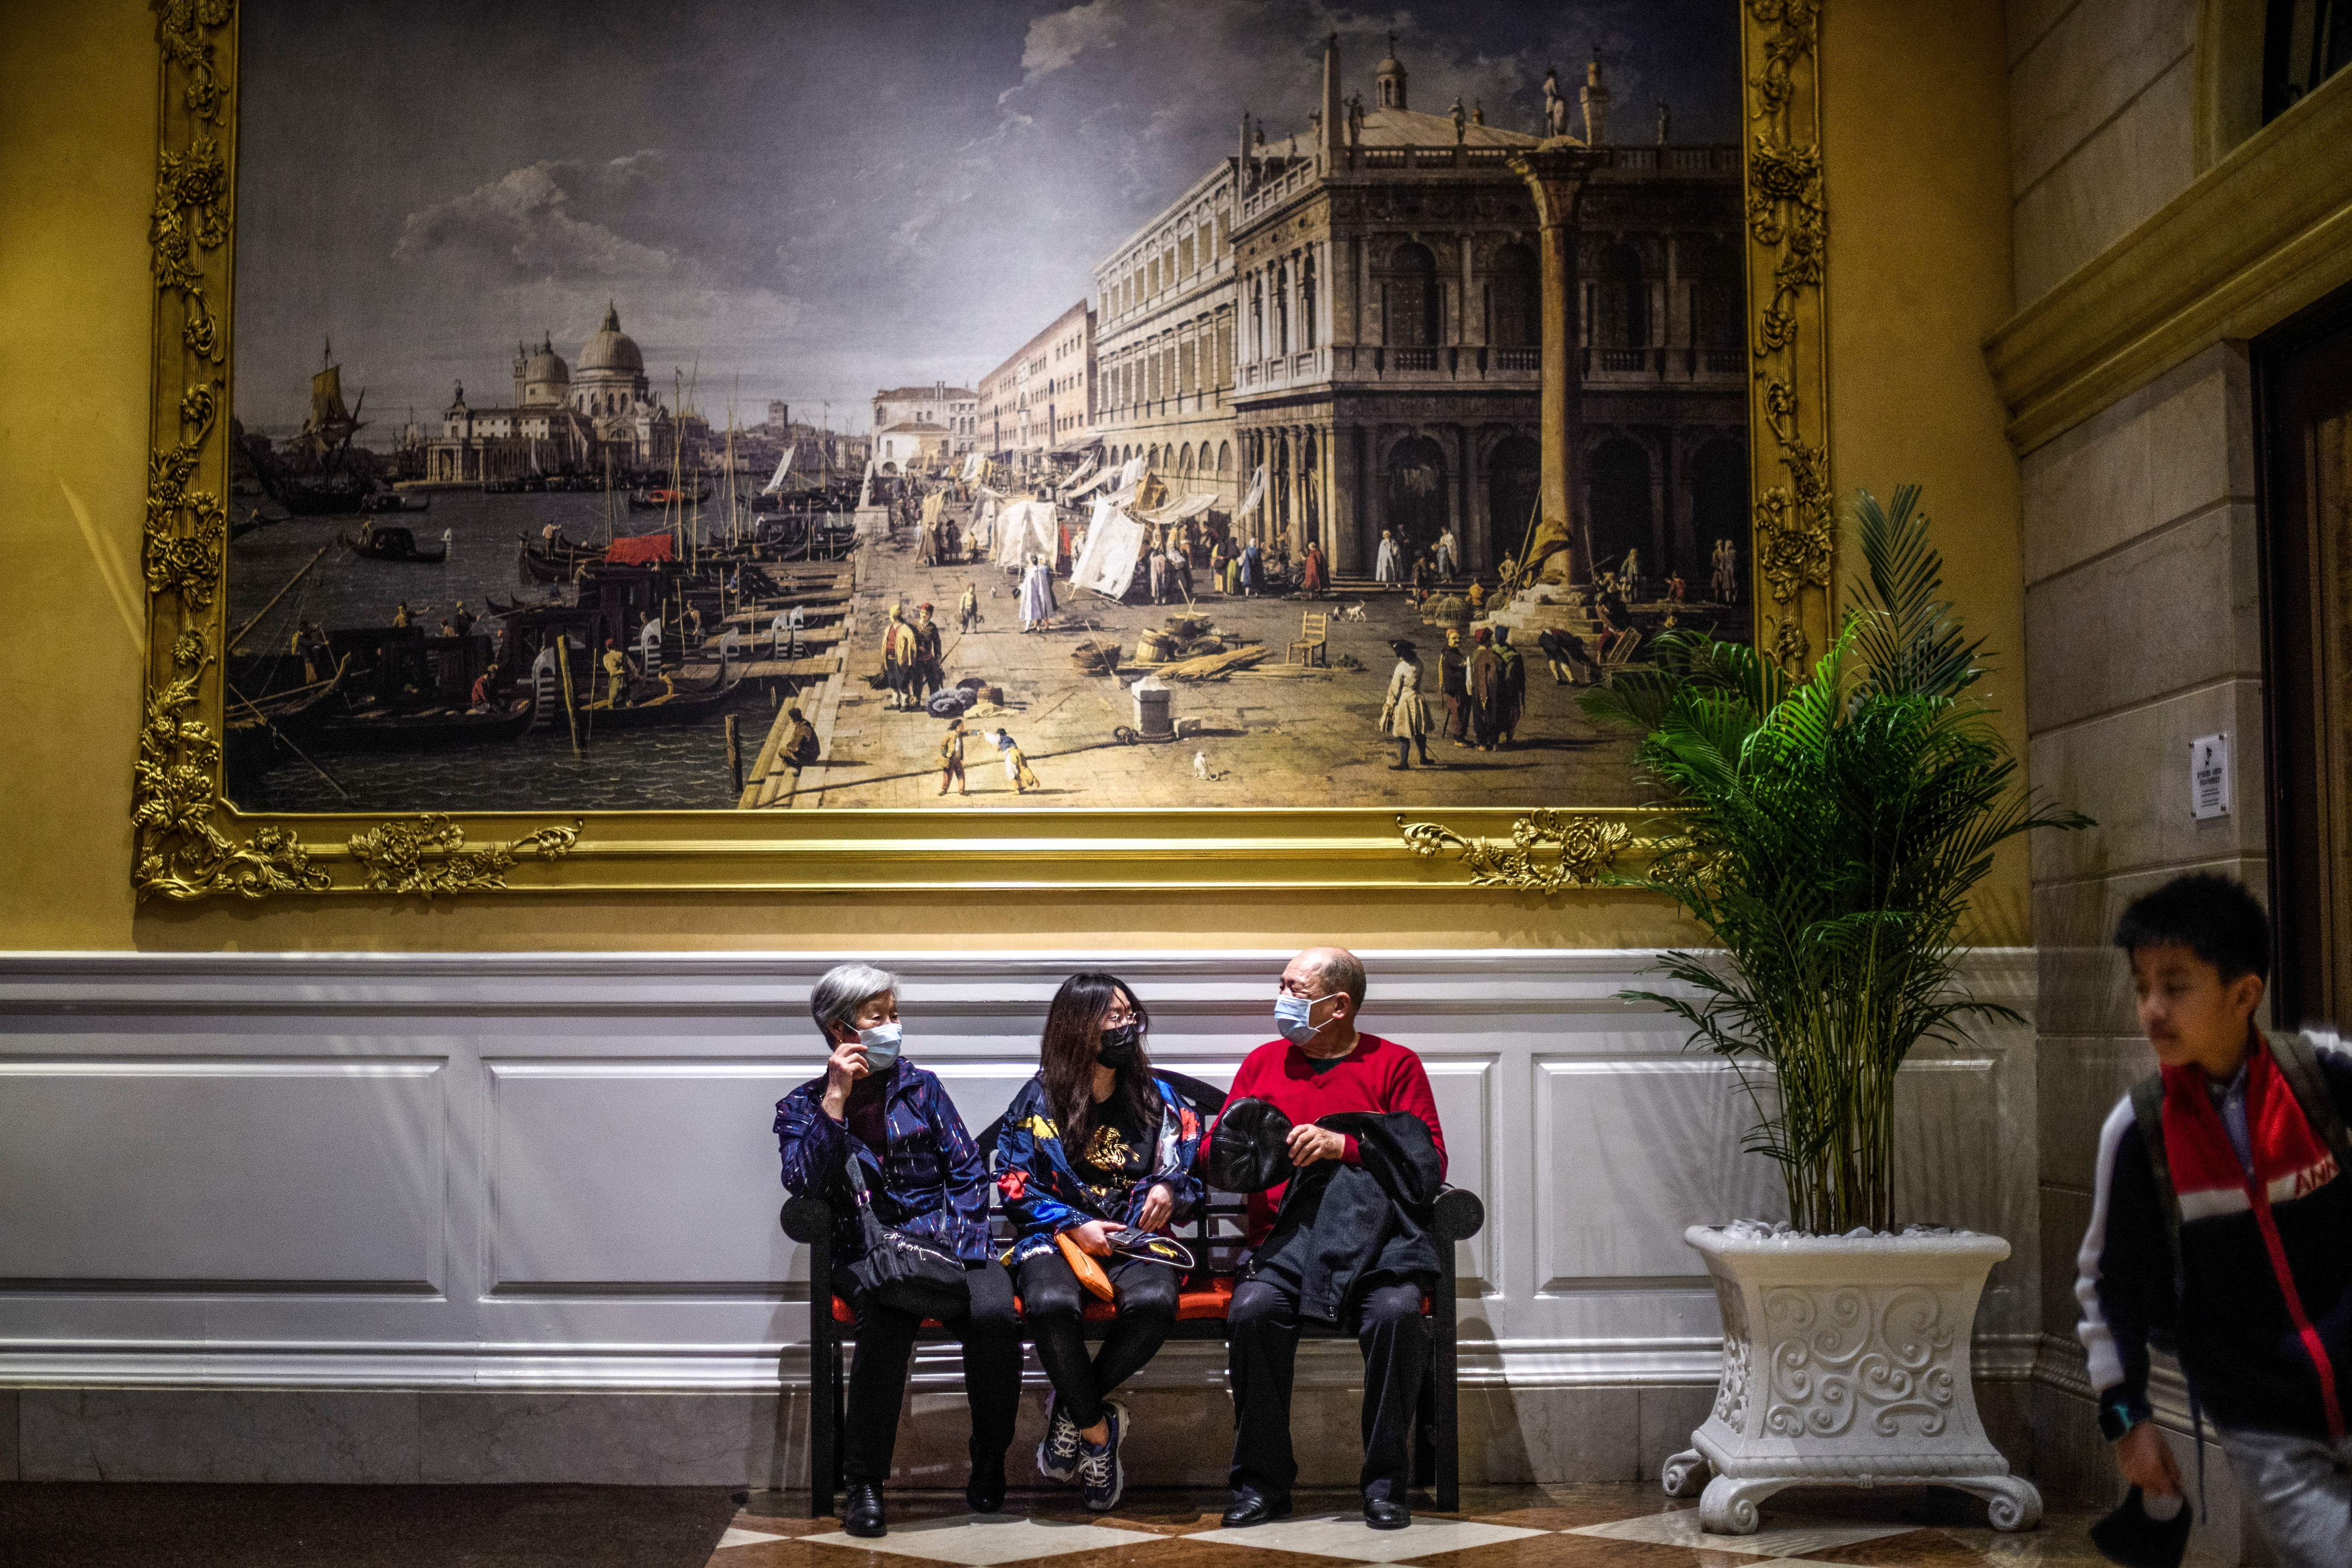 Visitors wear face masks as they sit inside the Venetian casino hotel resort in Macao on Wednesday.